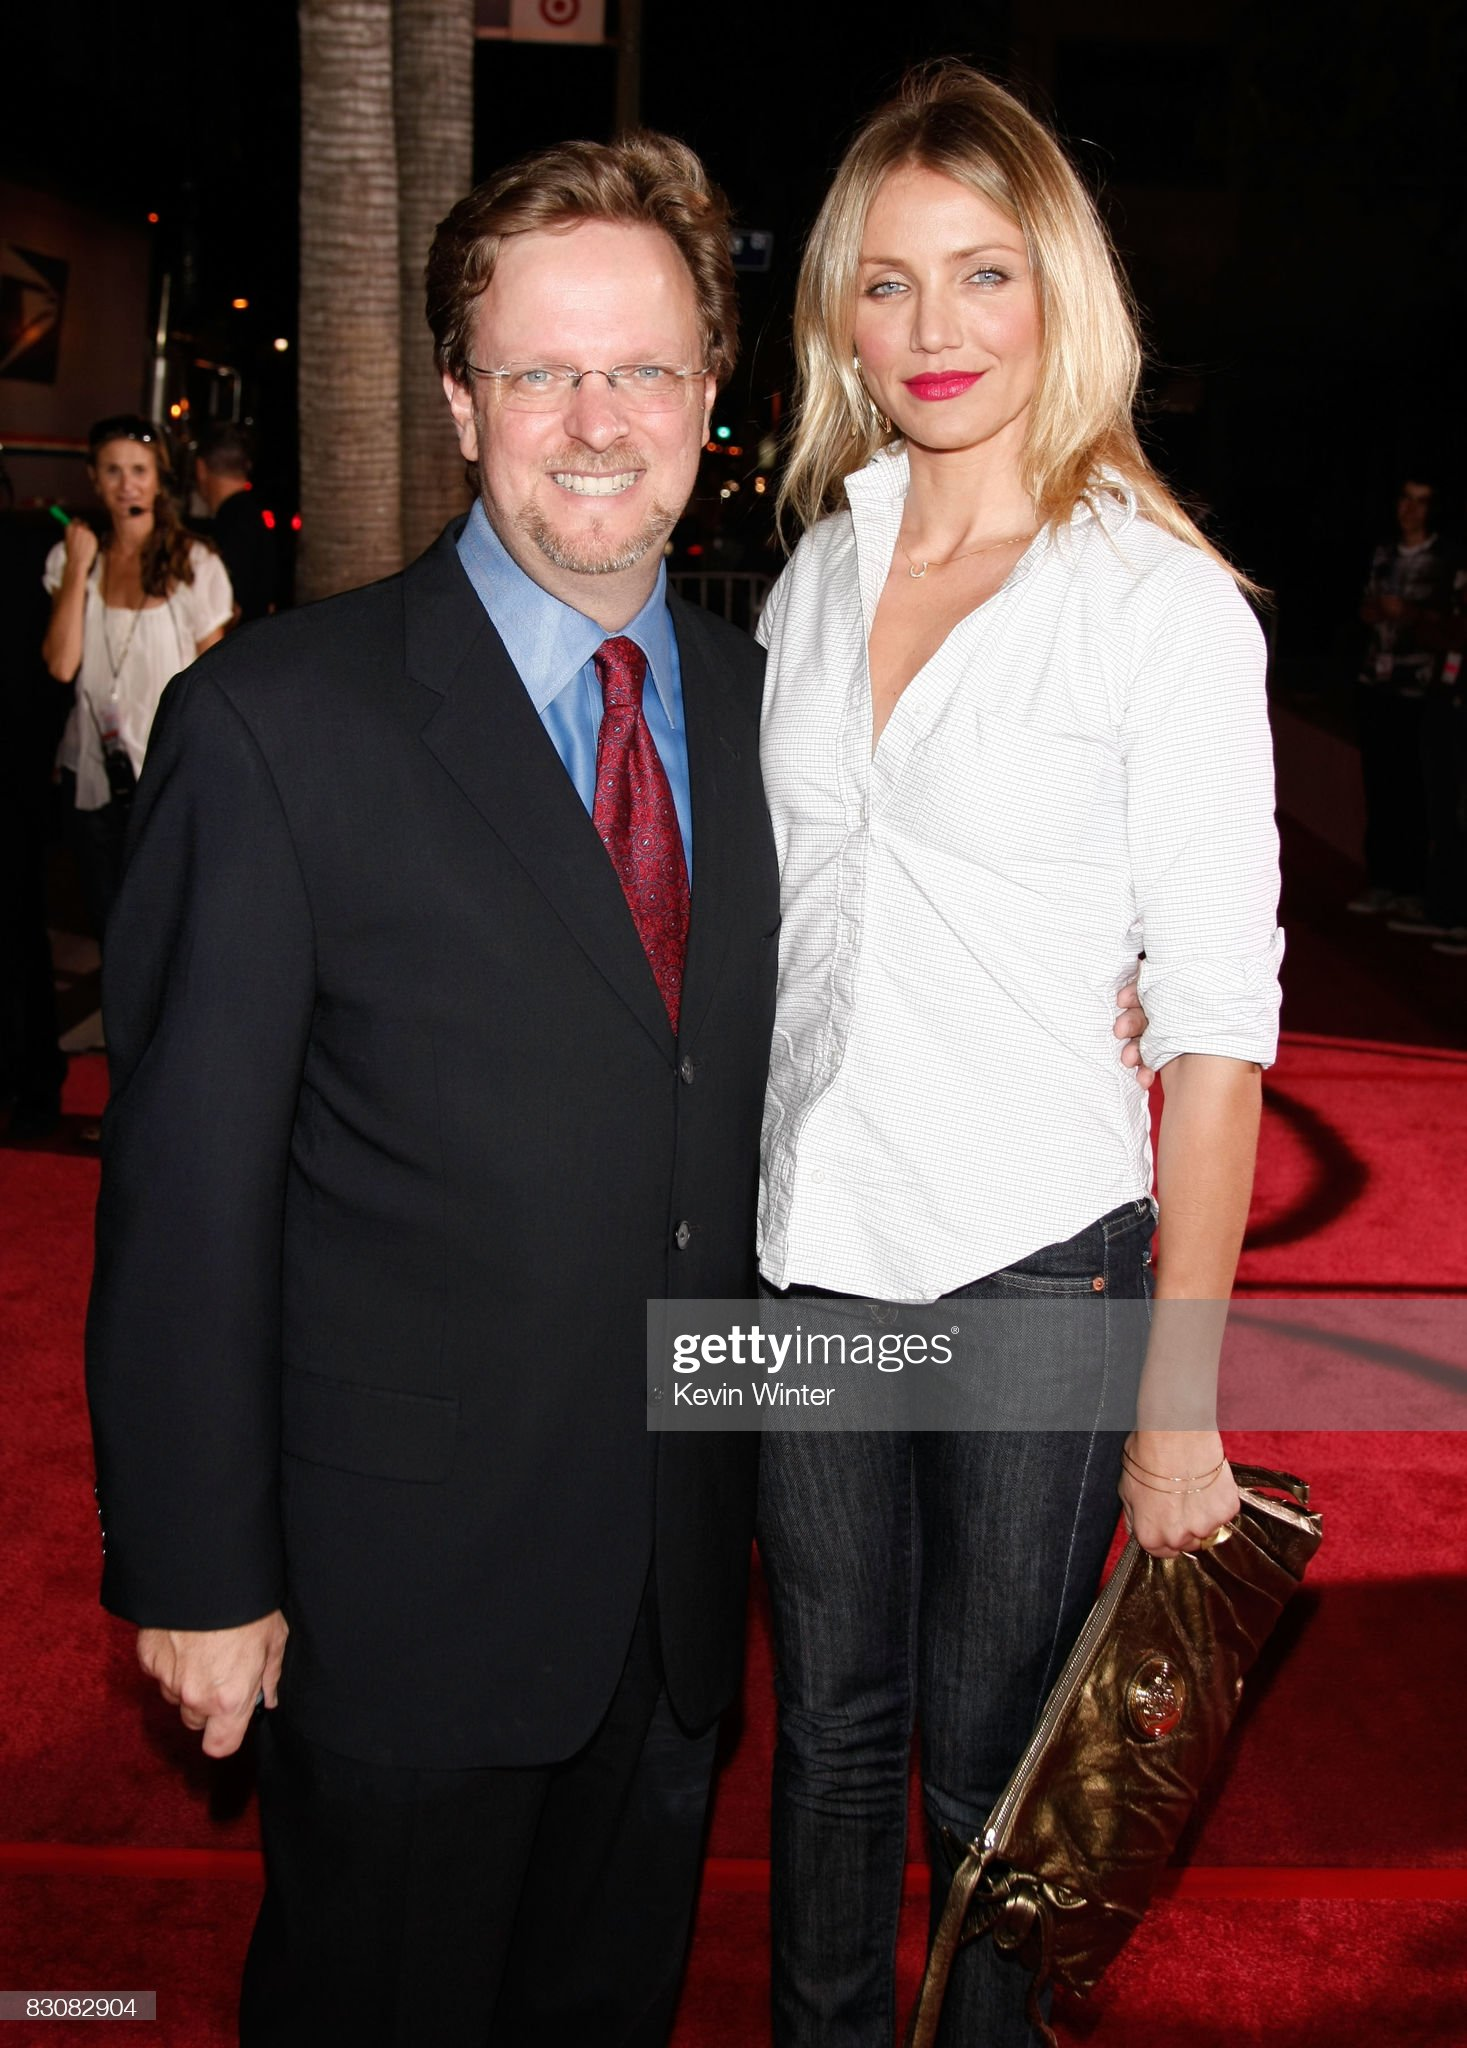 ¿Cuánto mide Bob Gazzale? - Real height President-ceo-bob-gazzale-and-actress-cameron-diaz-arrive-at-afis-at-picture-id83082904?s=2048x2048